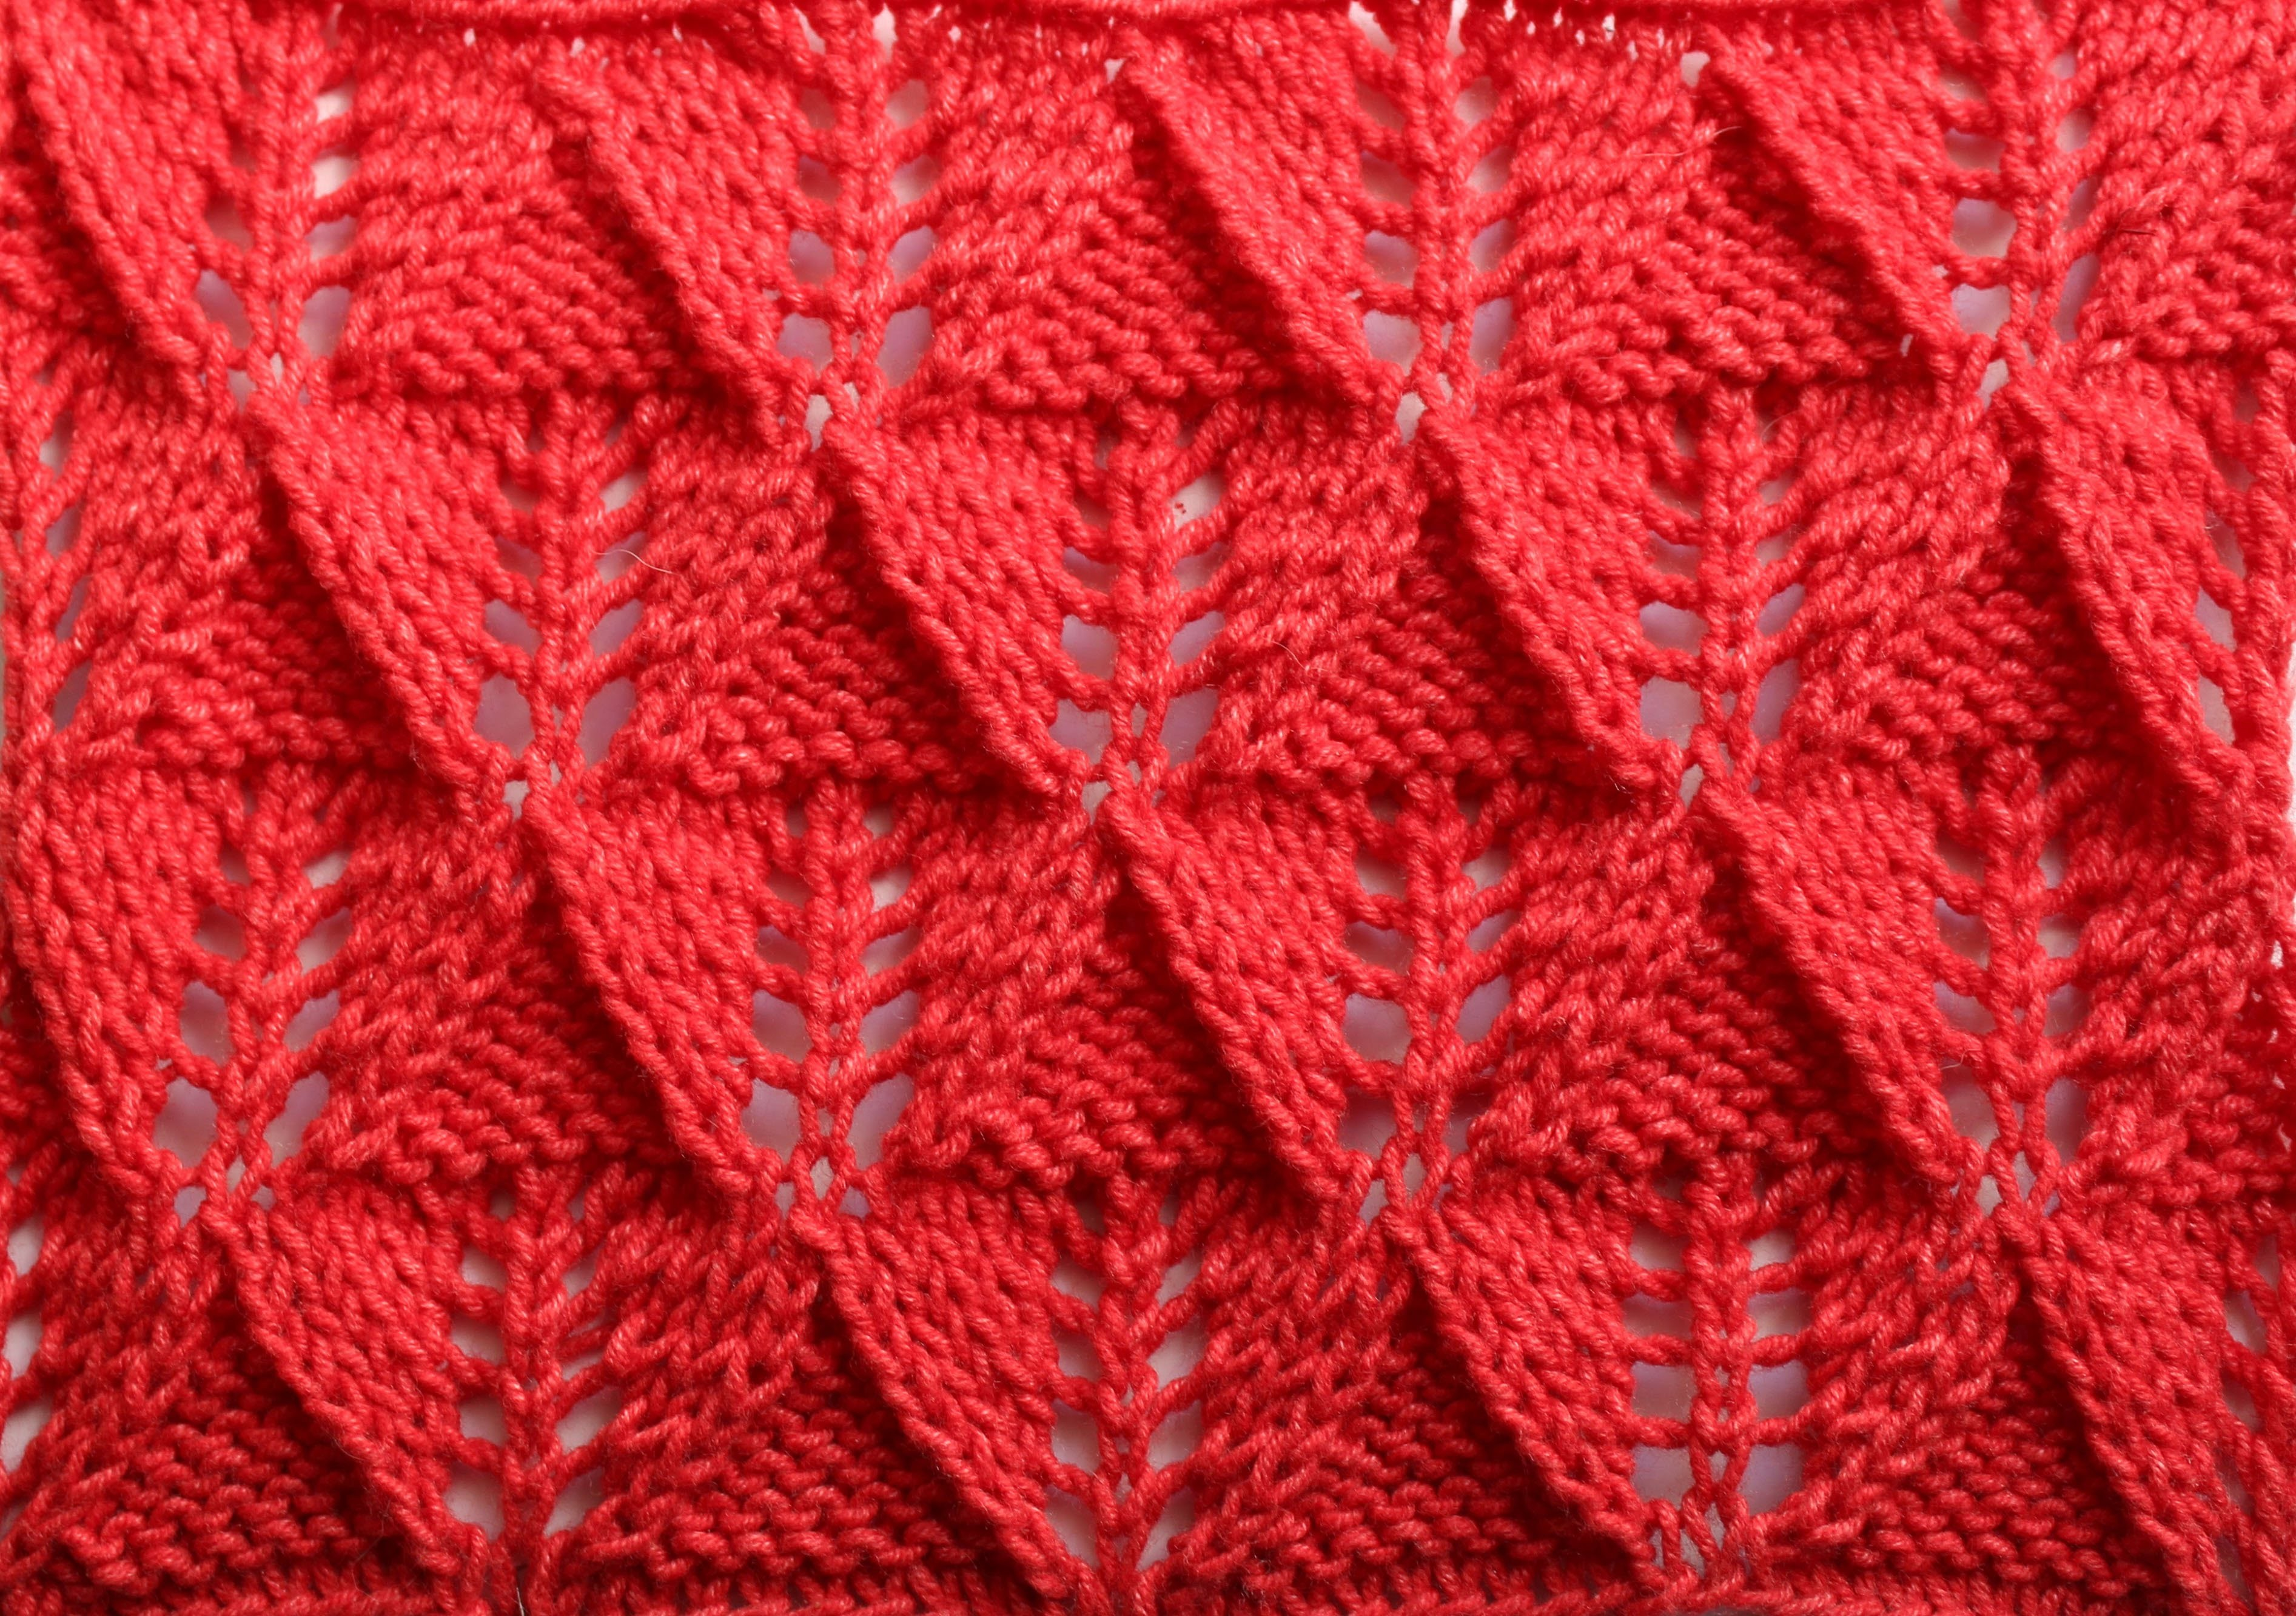 How to Knit the Leaf Stitch_Ажурный узор